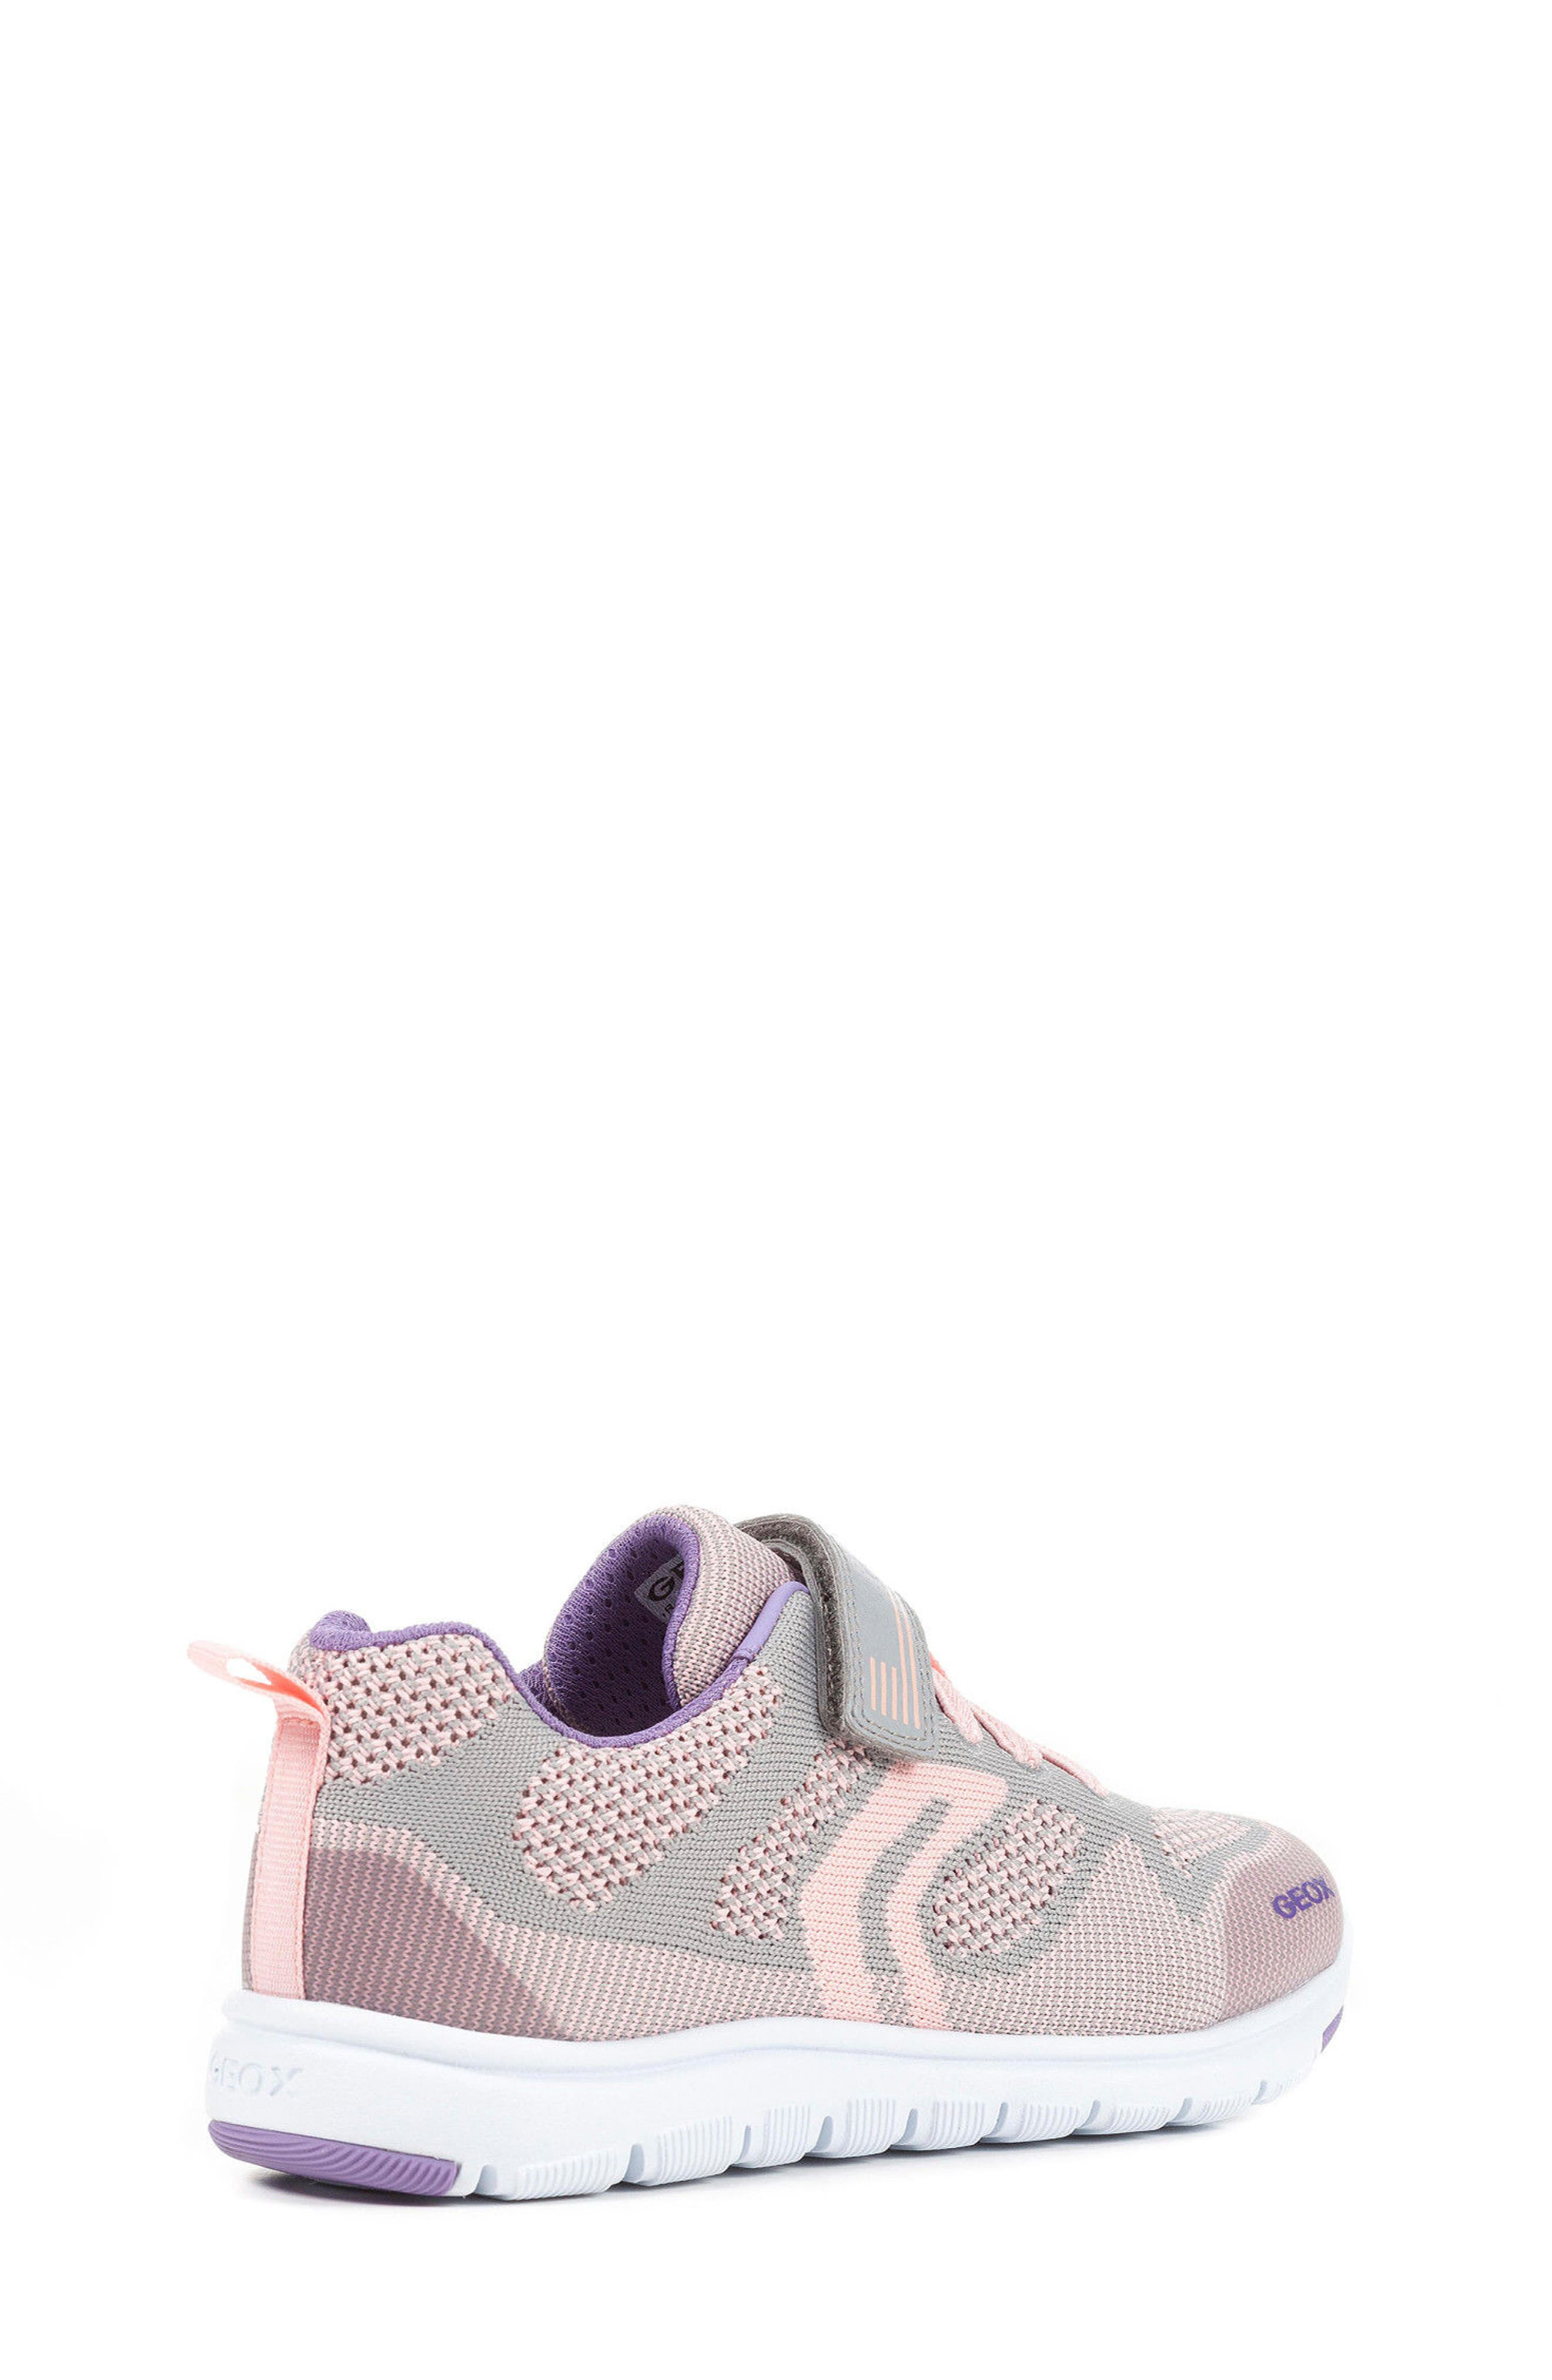 Xunday Low Top Woven Sneaker,                             Alternate thumbnail 2, color,                             066